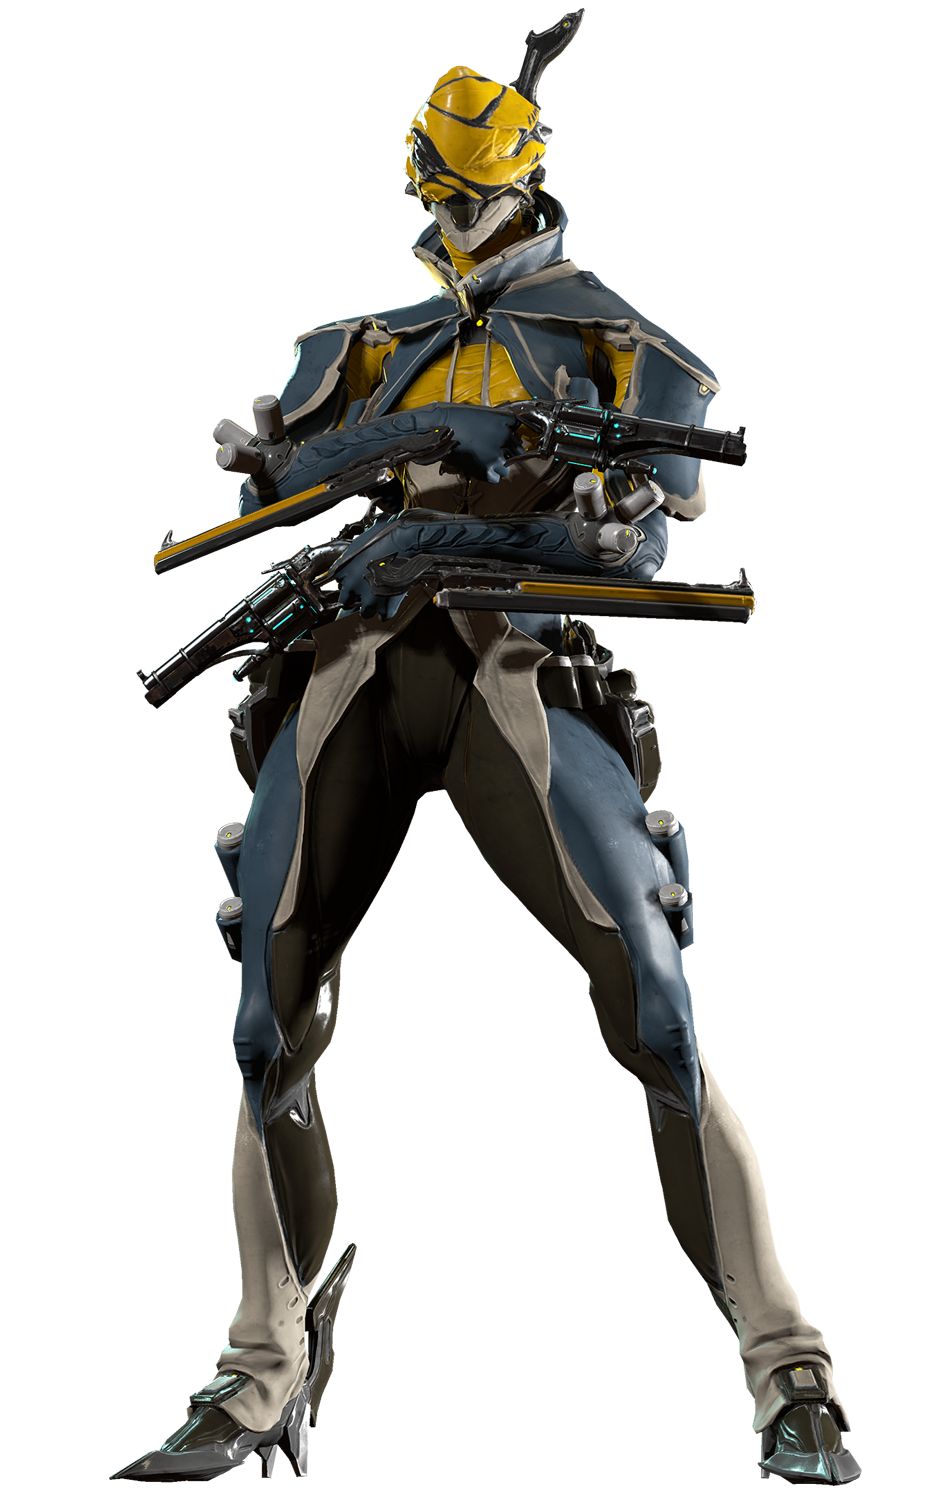 Gunslinger Juego De Mesa Mesa Is The Gunslinger Of Warframes. Master In The Art